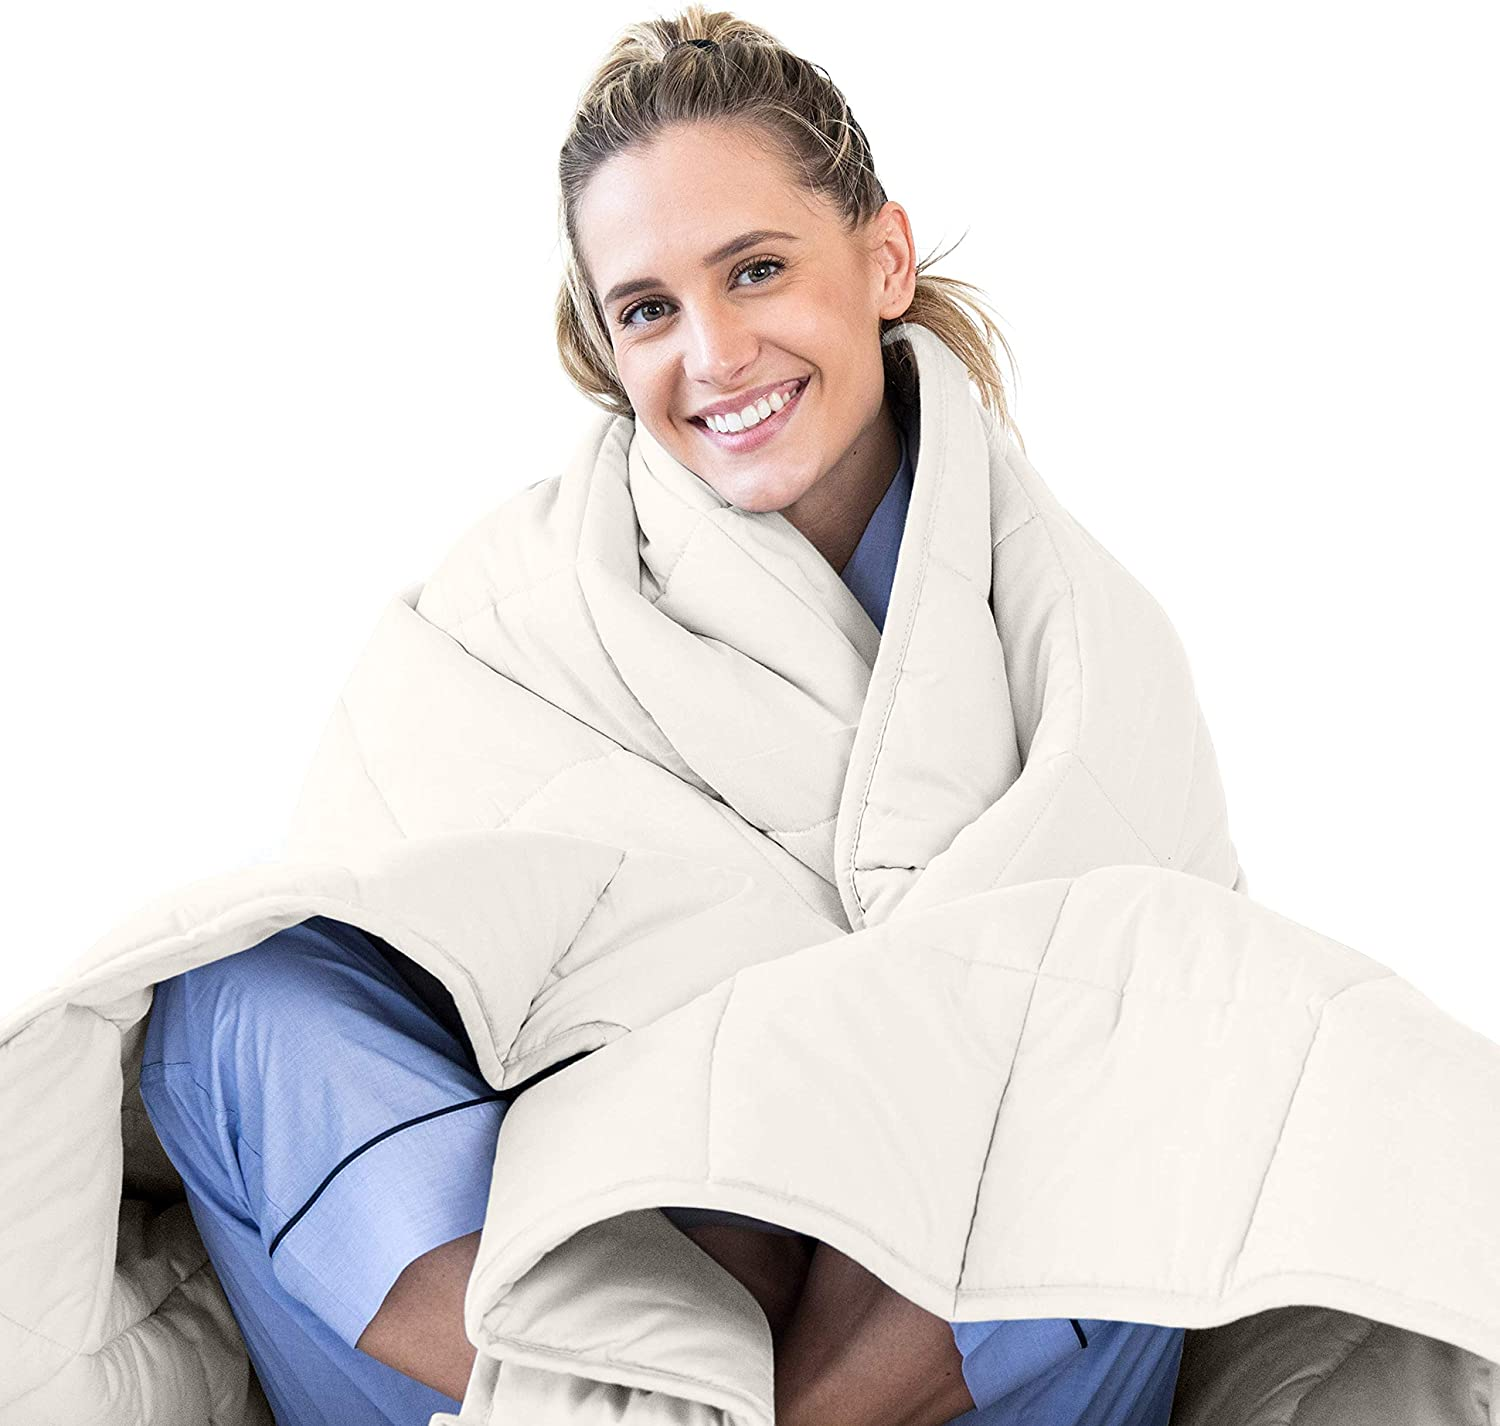 LUNA Adult Weighted Blanket | Individual Use - 25 lbs - 80x87 - Queen/King Size Bed | 100% Oeko-Tex Certified Cooling Cotton & Glass Beads | USA Designed | Heavy Cool Weight | Ivory